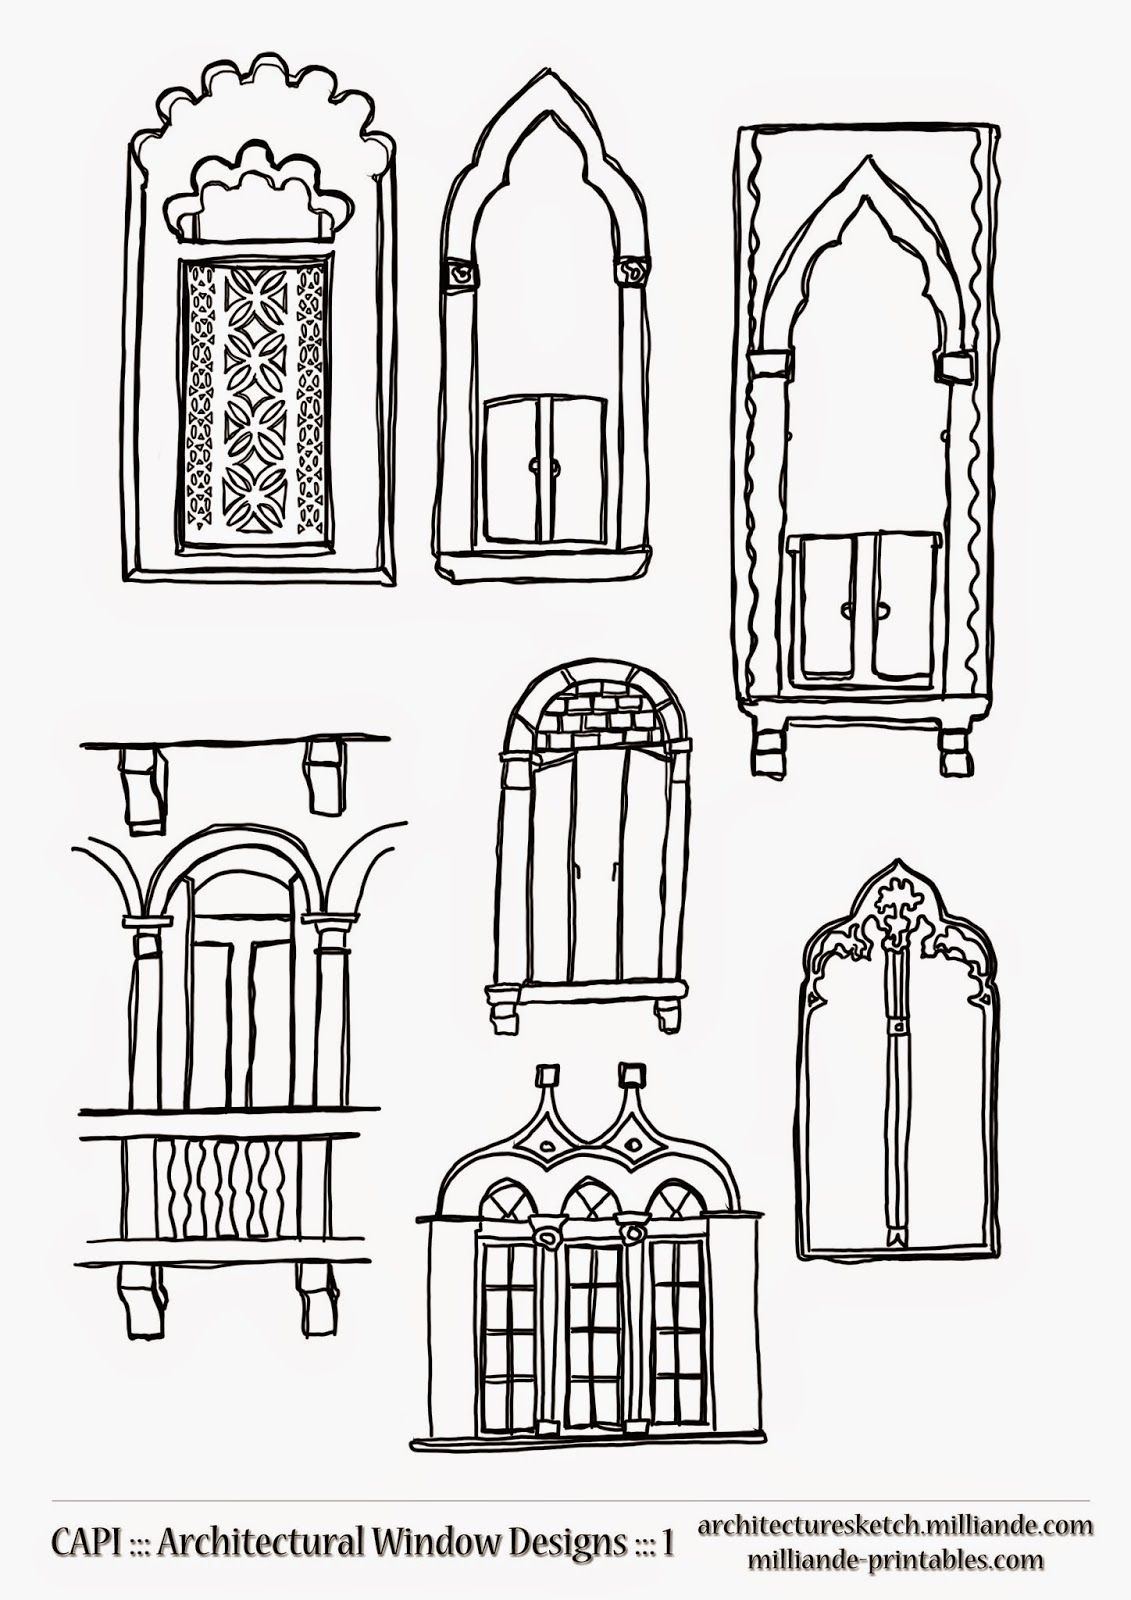 Beautiful Milliandeu0027s Architecture Sketch Book : Architecture Sketch CAPI :::  Oriental Window Designs Windows,